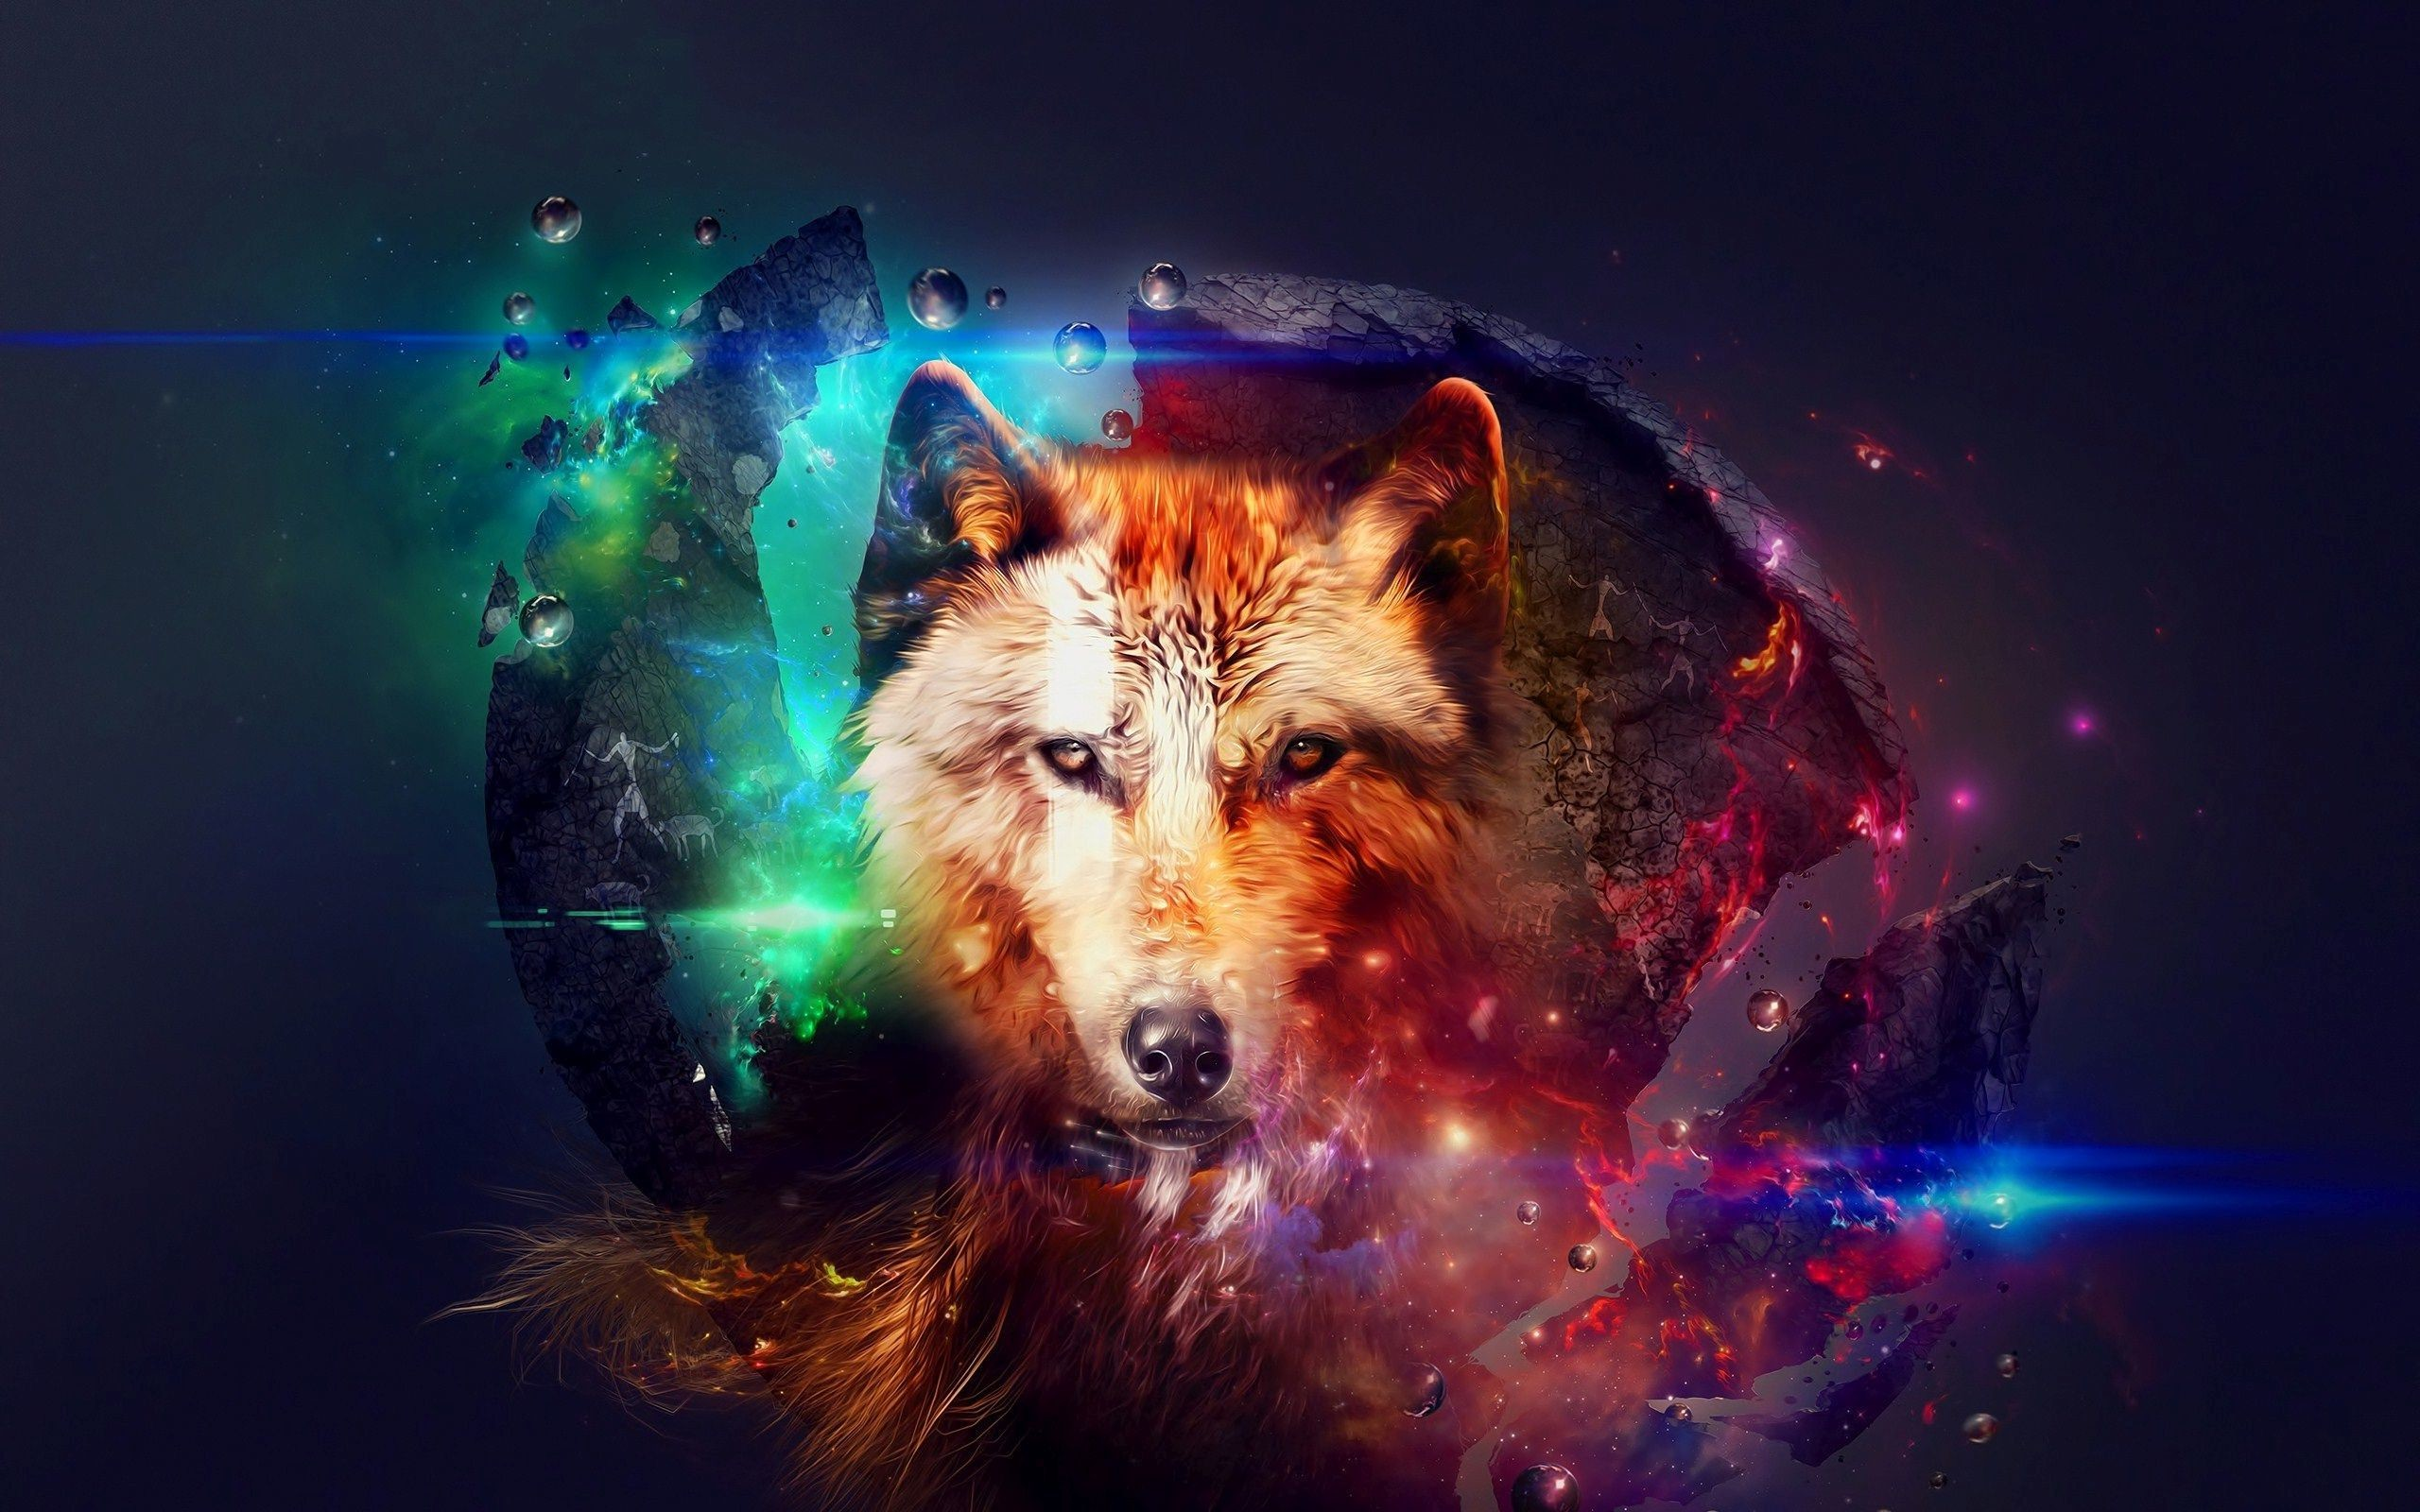 Galaxy wolf wallpaper 69 images - Space wallpaper 2160x1920 ...